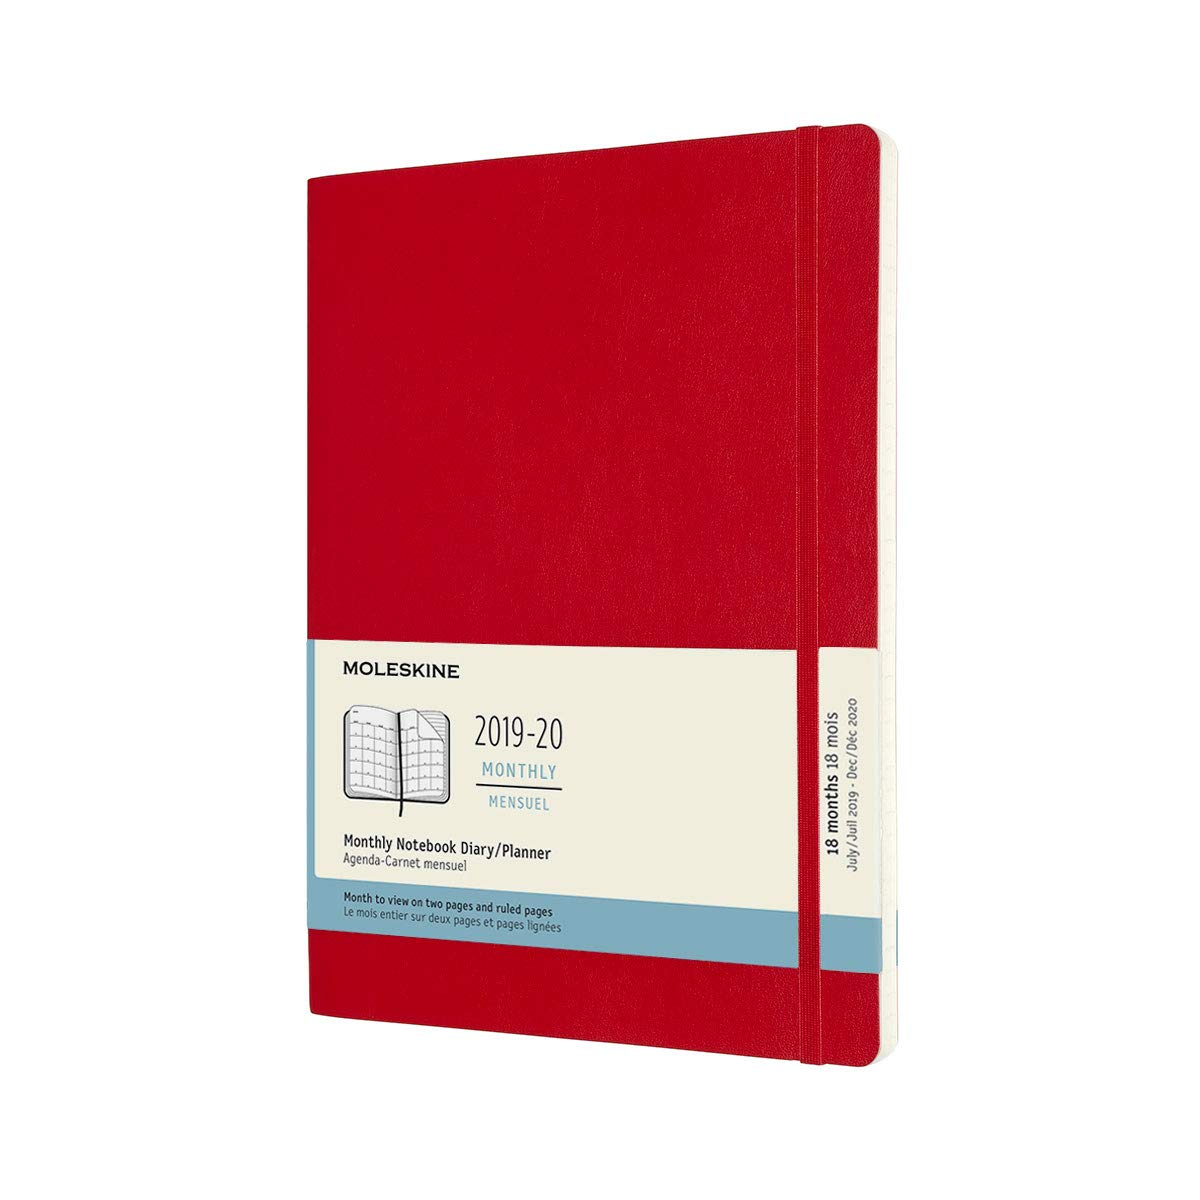 Moleskine 2019-20 Monthly Planner, 18 Month, Extra Large, Scarlet Red, Soft Cover